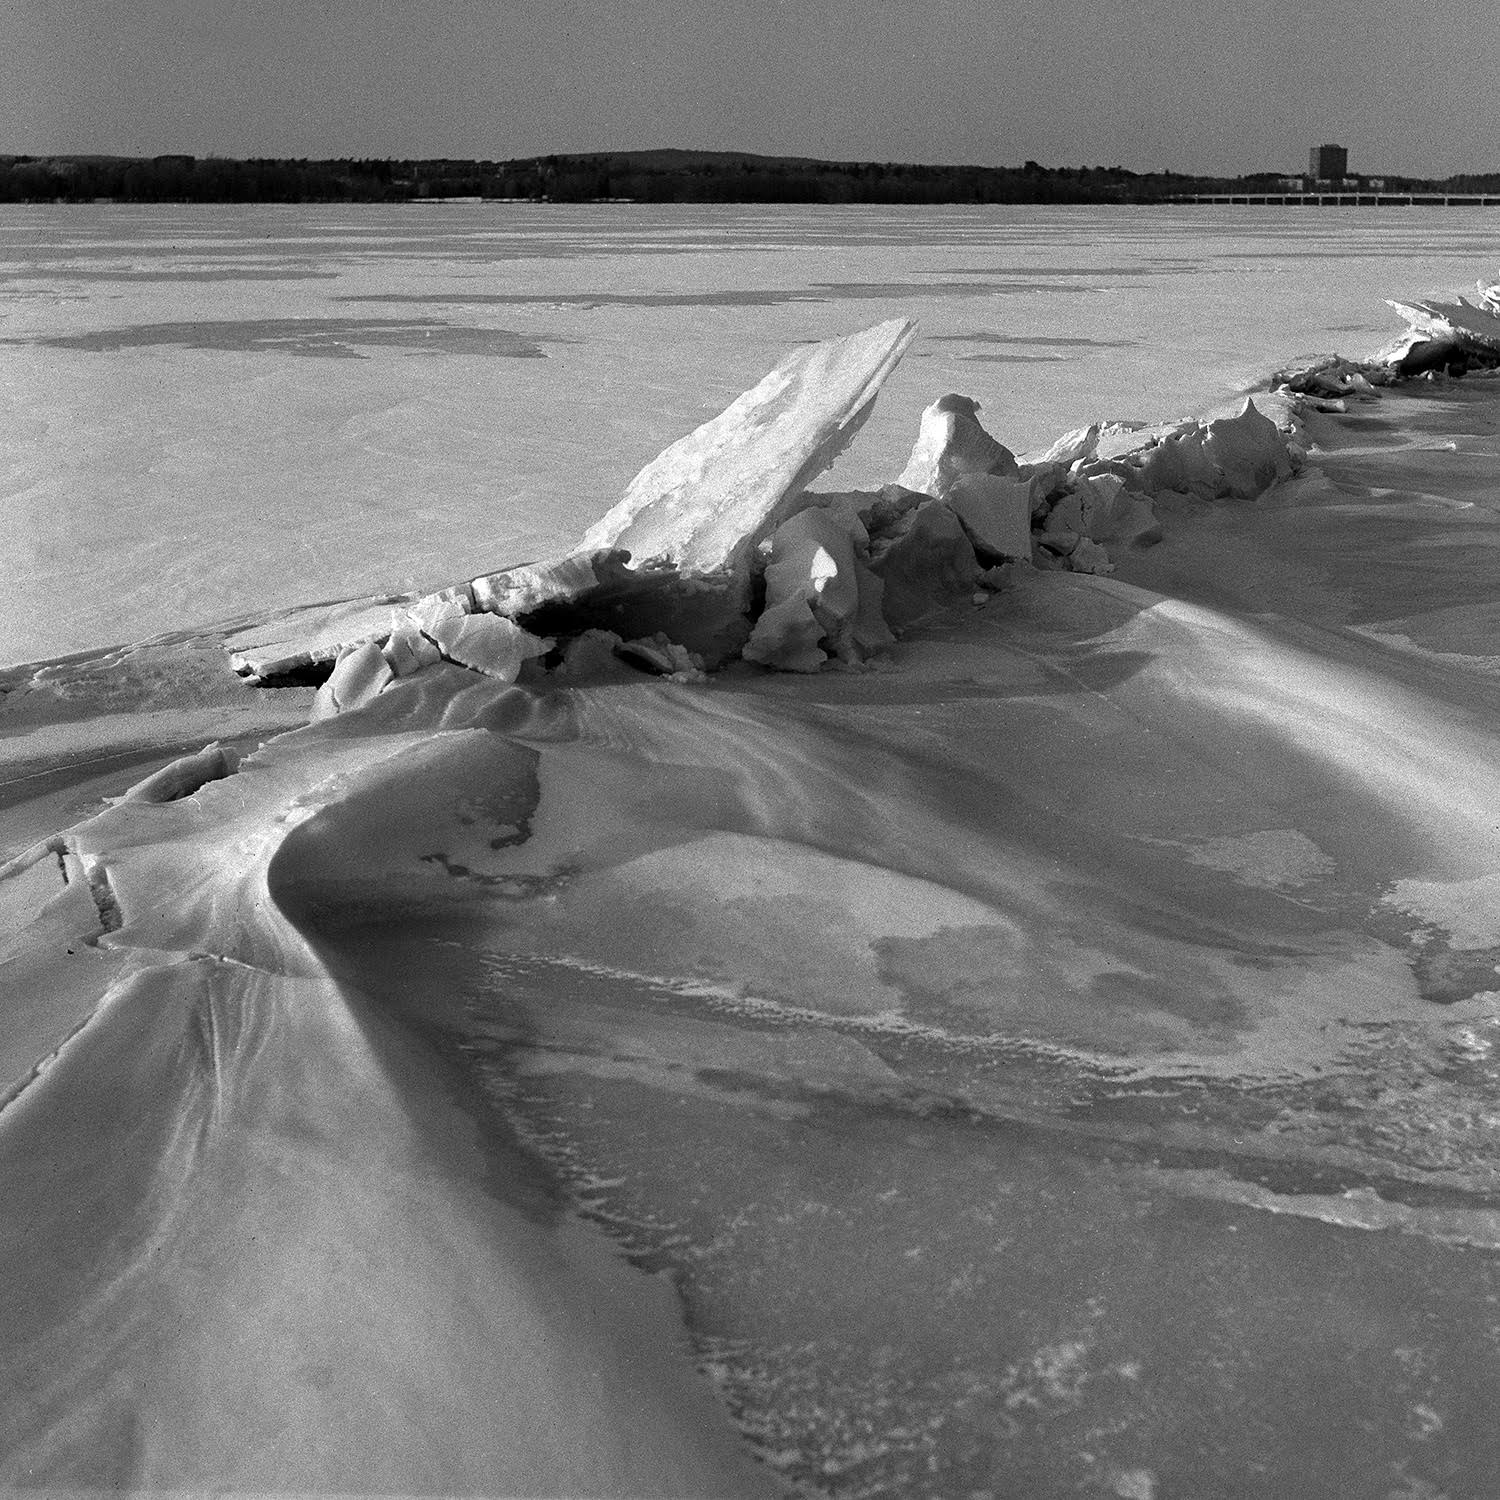 River Ice, 2017.  Ilford Delta 400. Yellow filter. The Rikenon lens is plenty sharp for my needs.